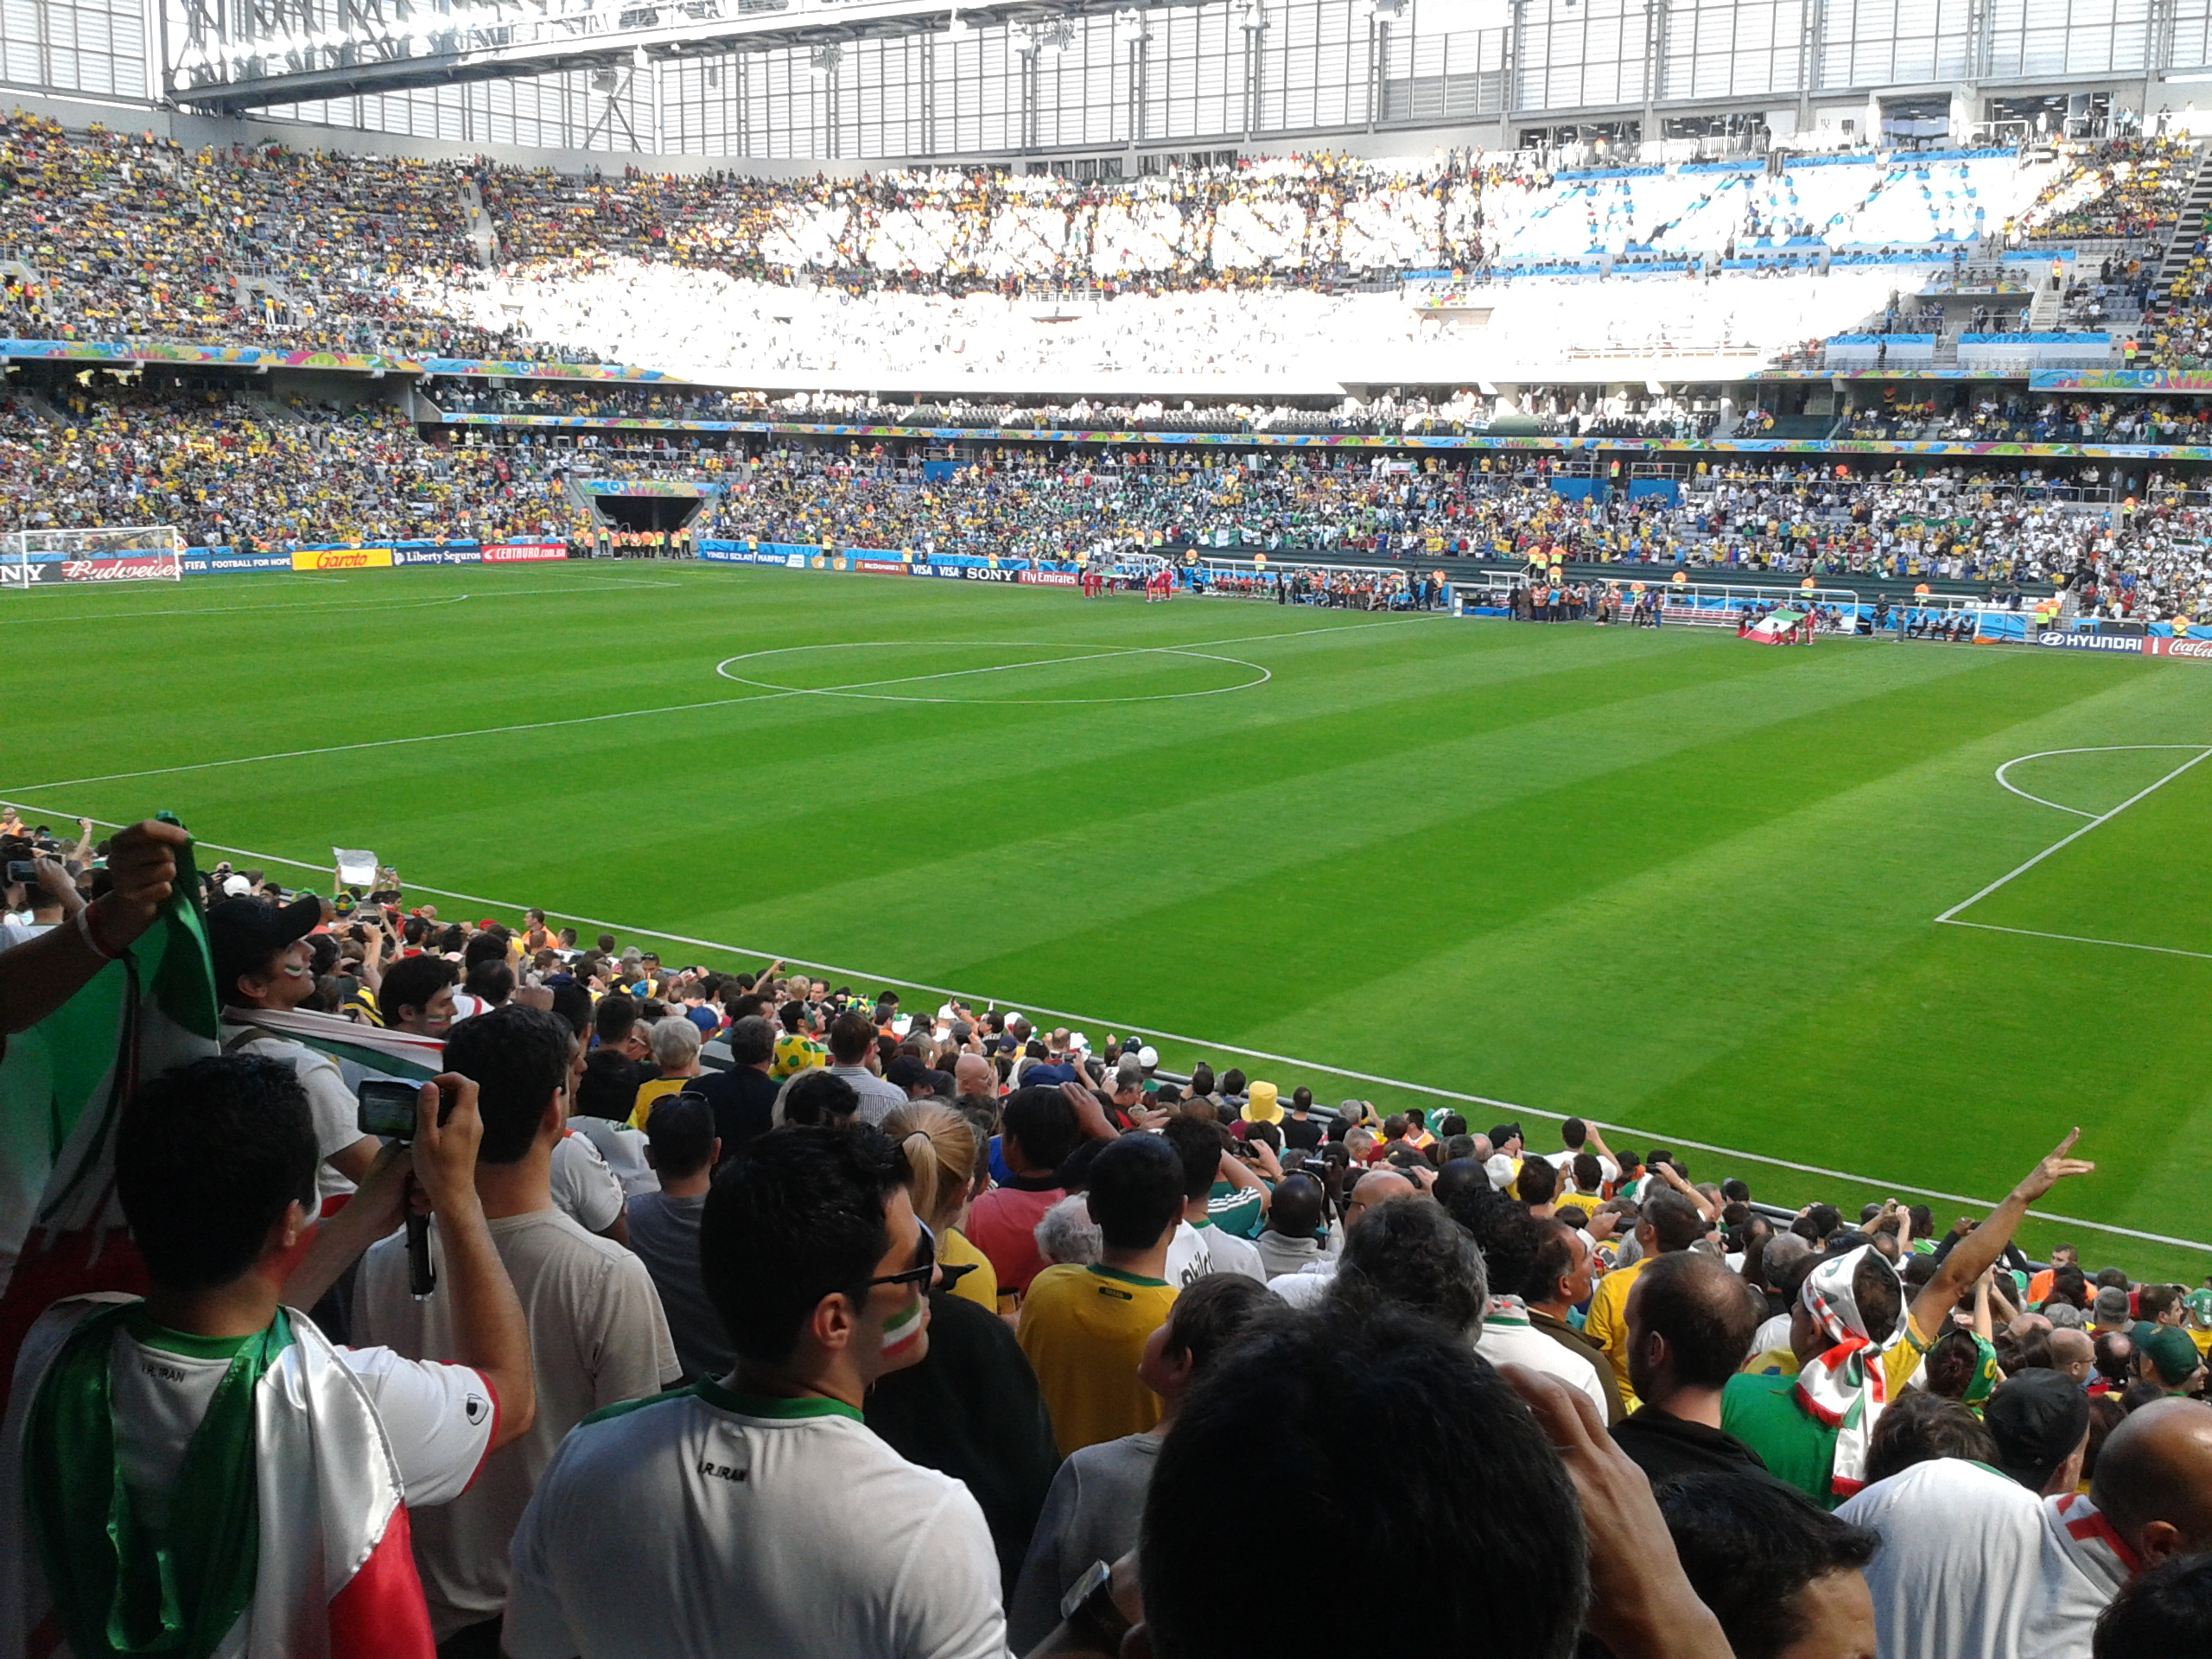 File:Iran and Nigeria match at the FIFA World Cup 2014-06-12